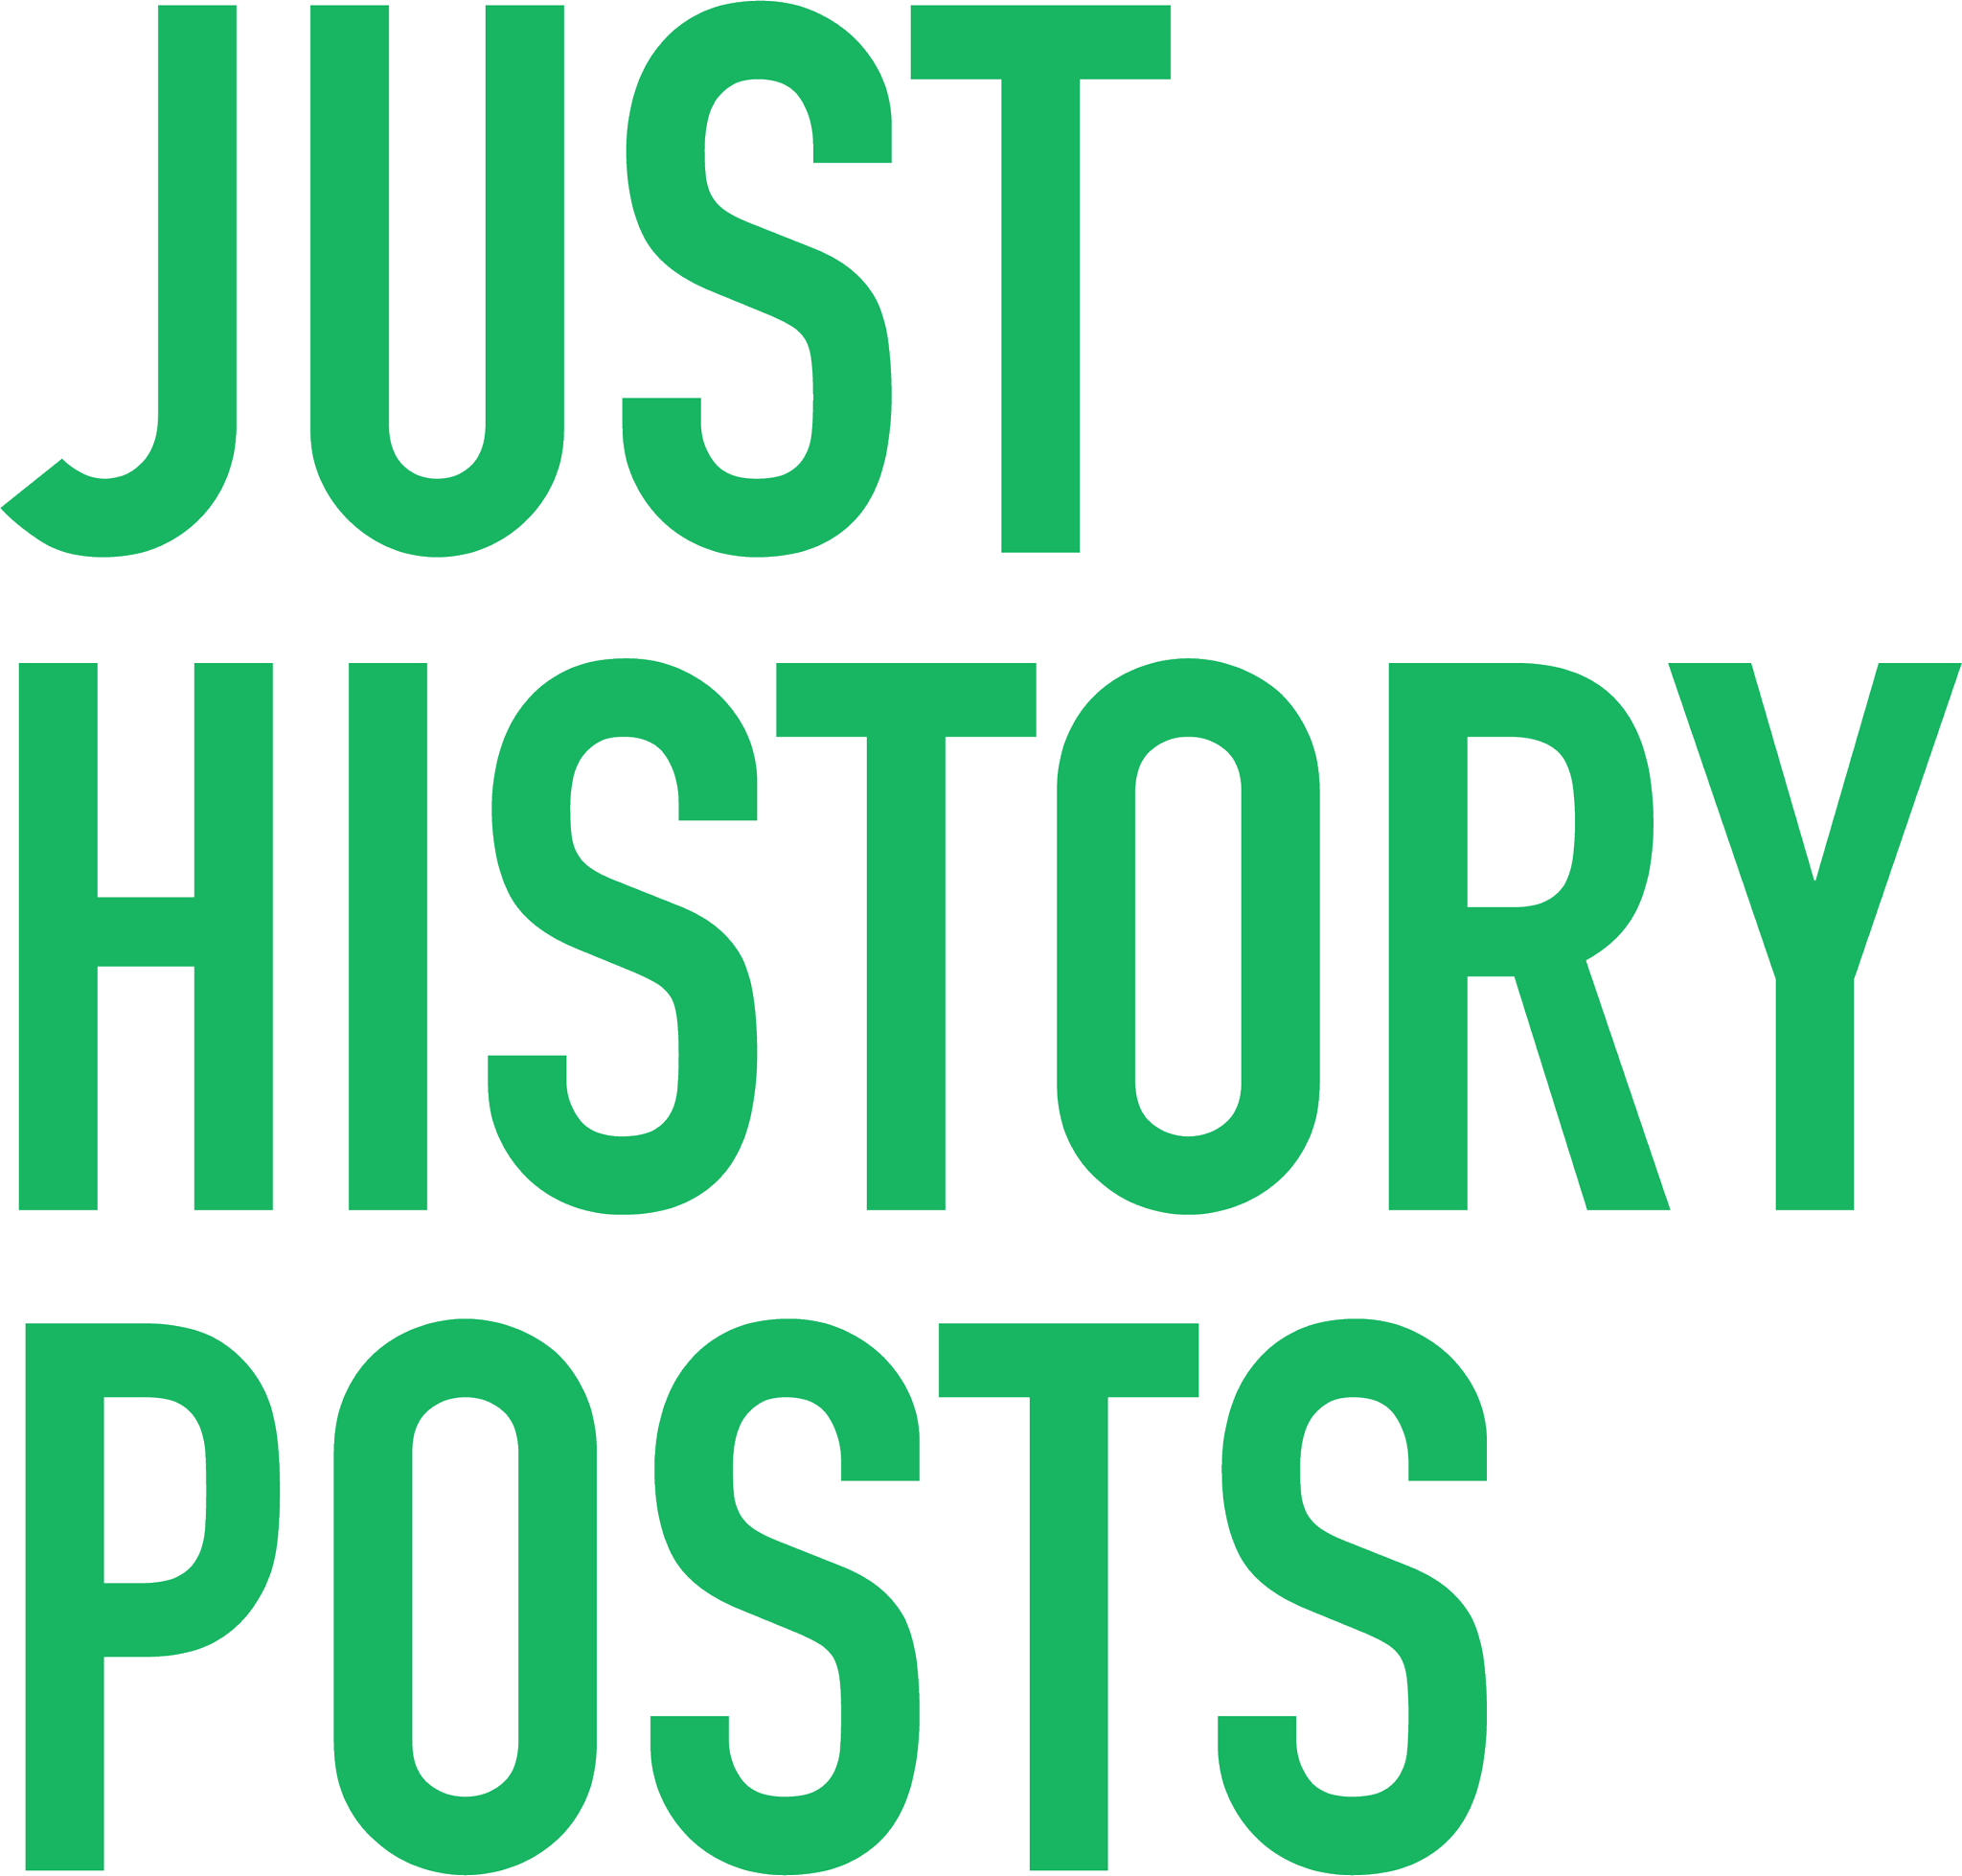 Just History Posts